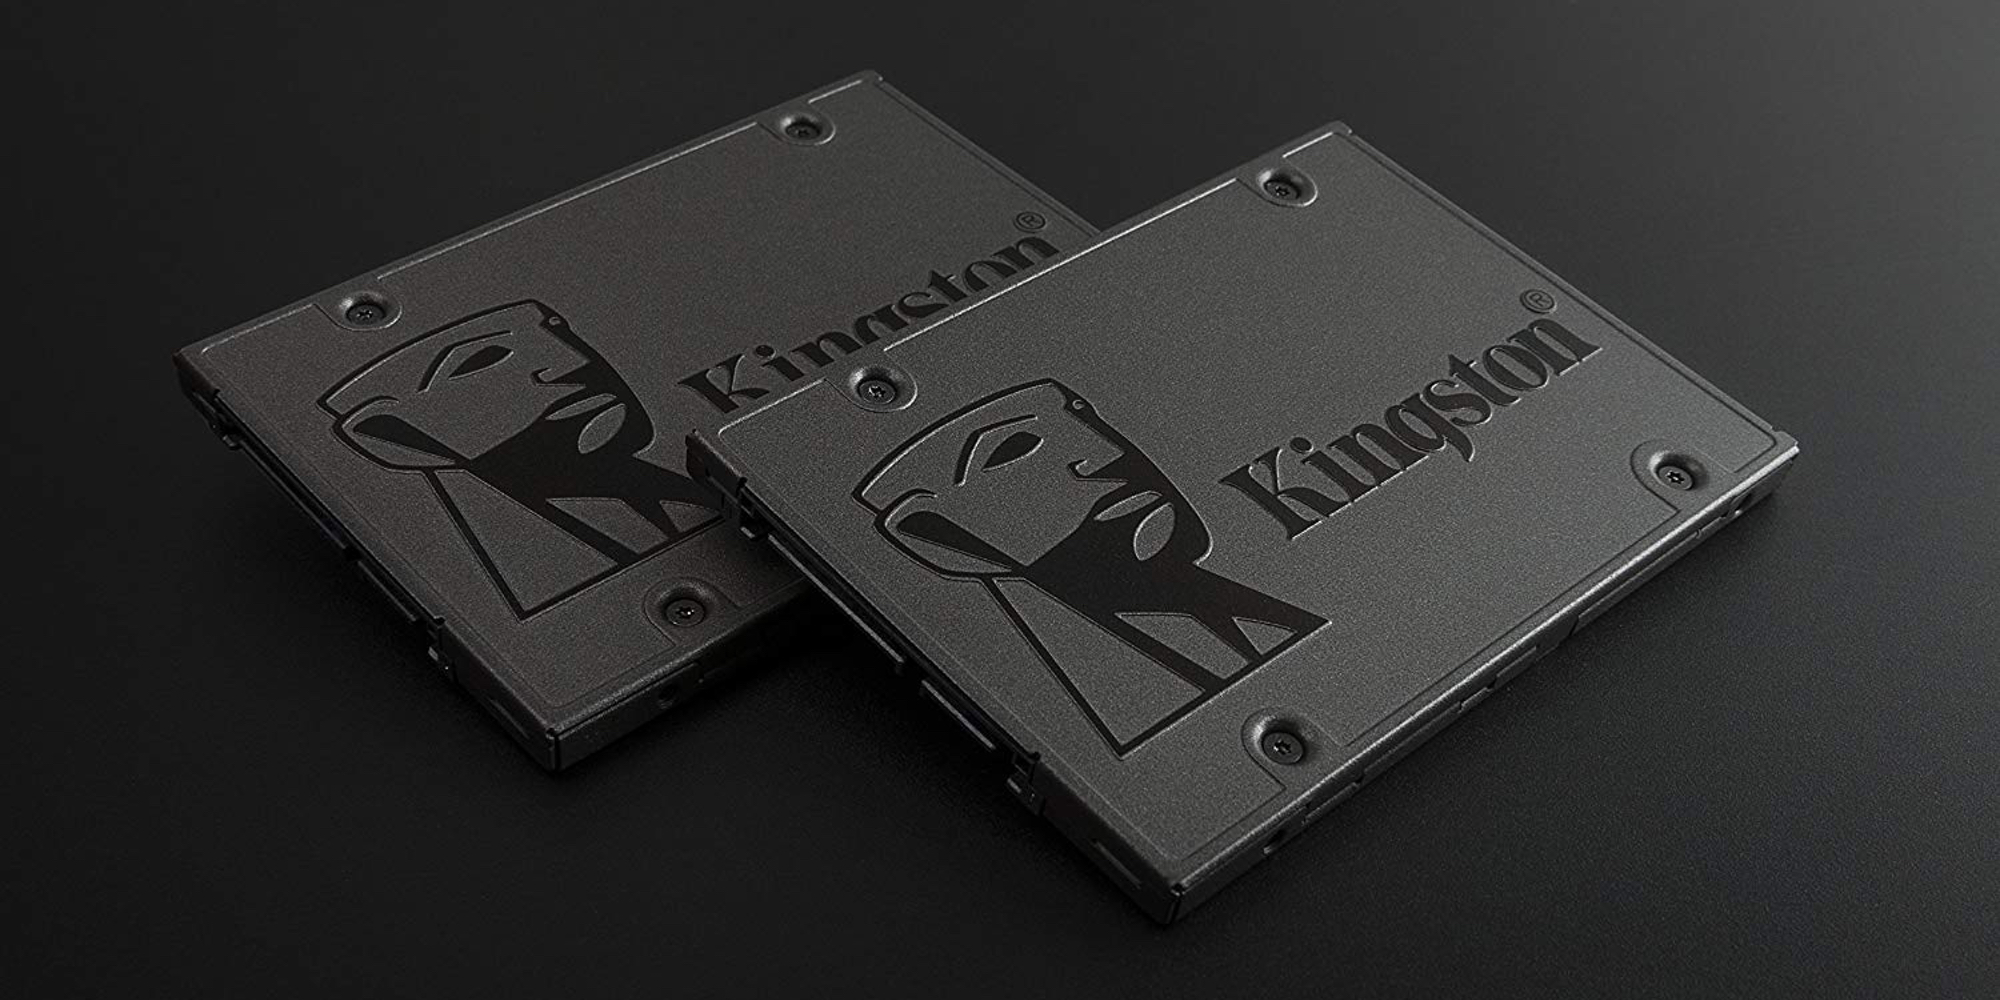 Score Kingston S A400 480gb Ssd At A New Amazon All Time Low 65